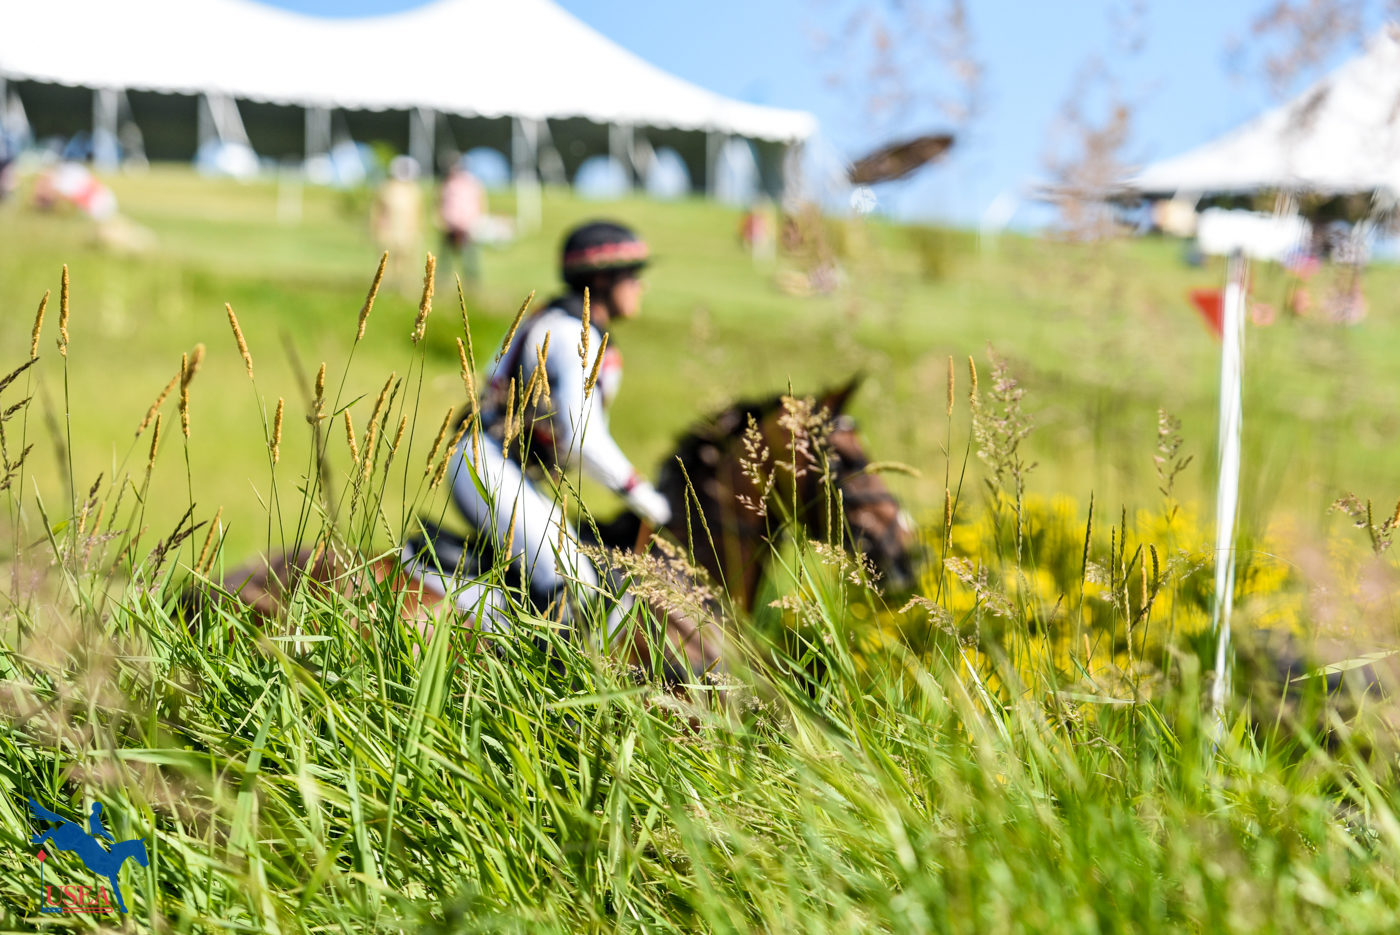 Galloping through the fields. USEA/Leslie Mintz Photo.